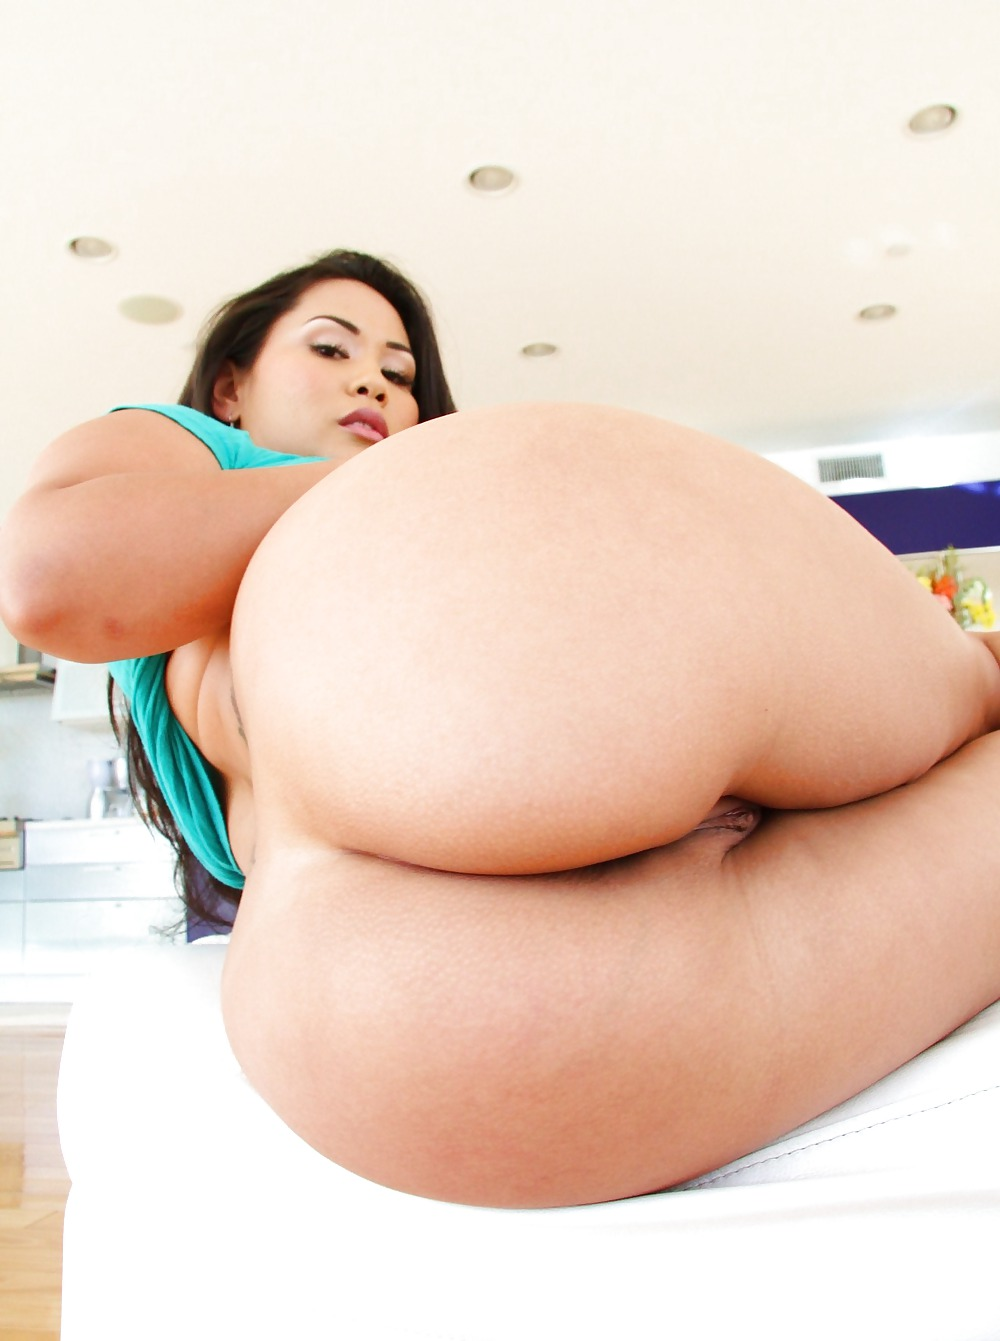 porno-gratis-free-huge-butt-asian-sex-pics-orgasm